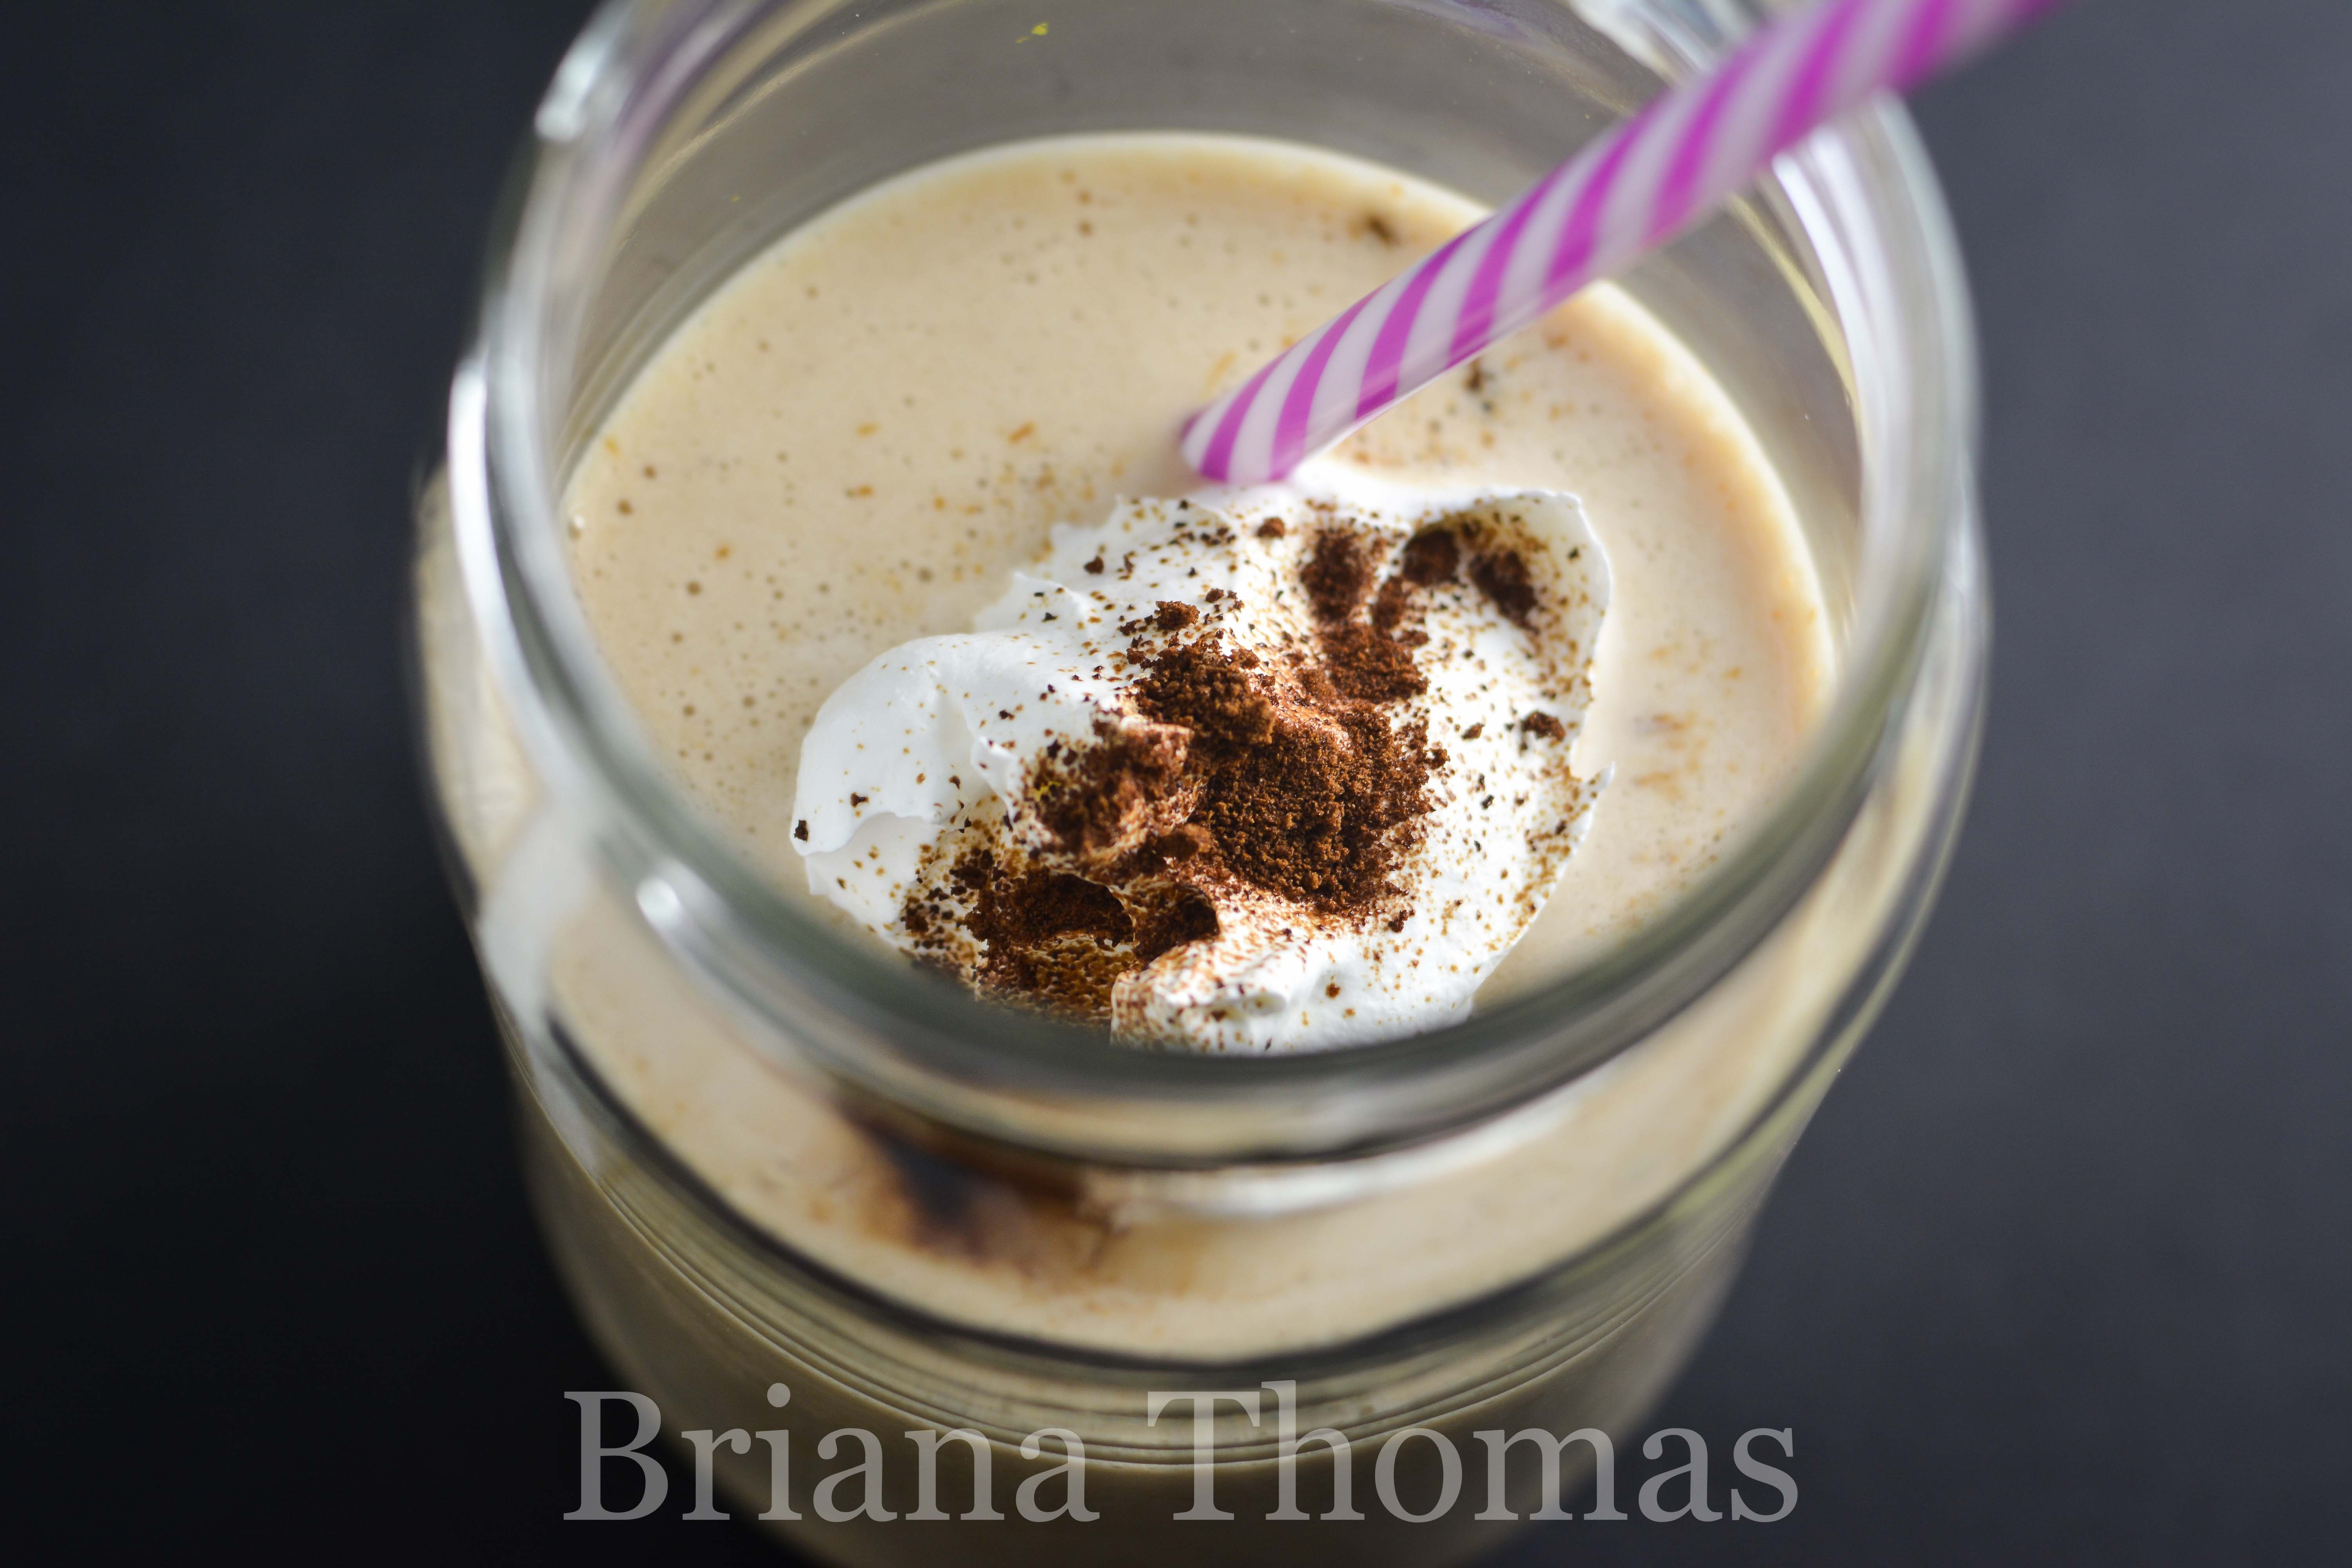 This delicious vanilla frappé is a cheaper, far healthier version of Starbucks! THM:FP, low carb, low fat, sugar free, gluten/egg/dairy/nut free